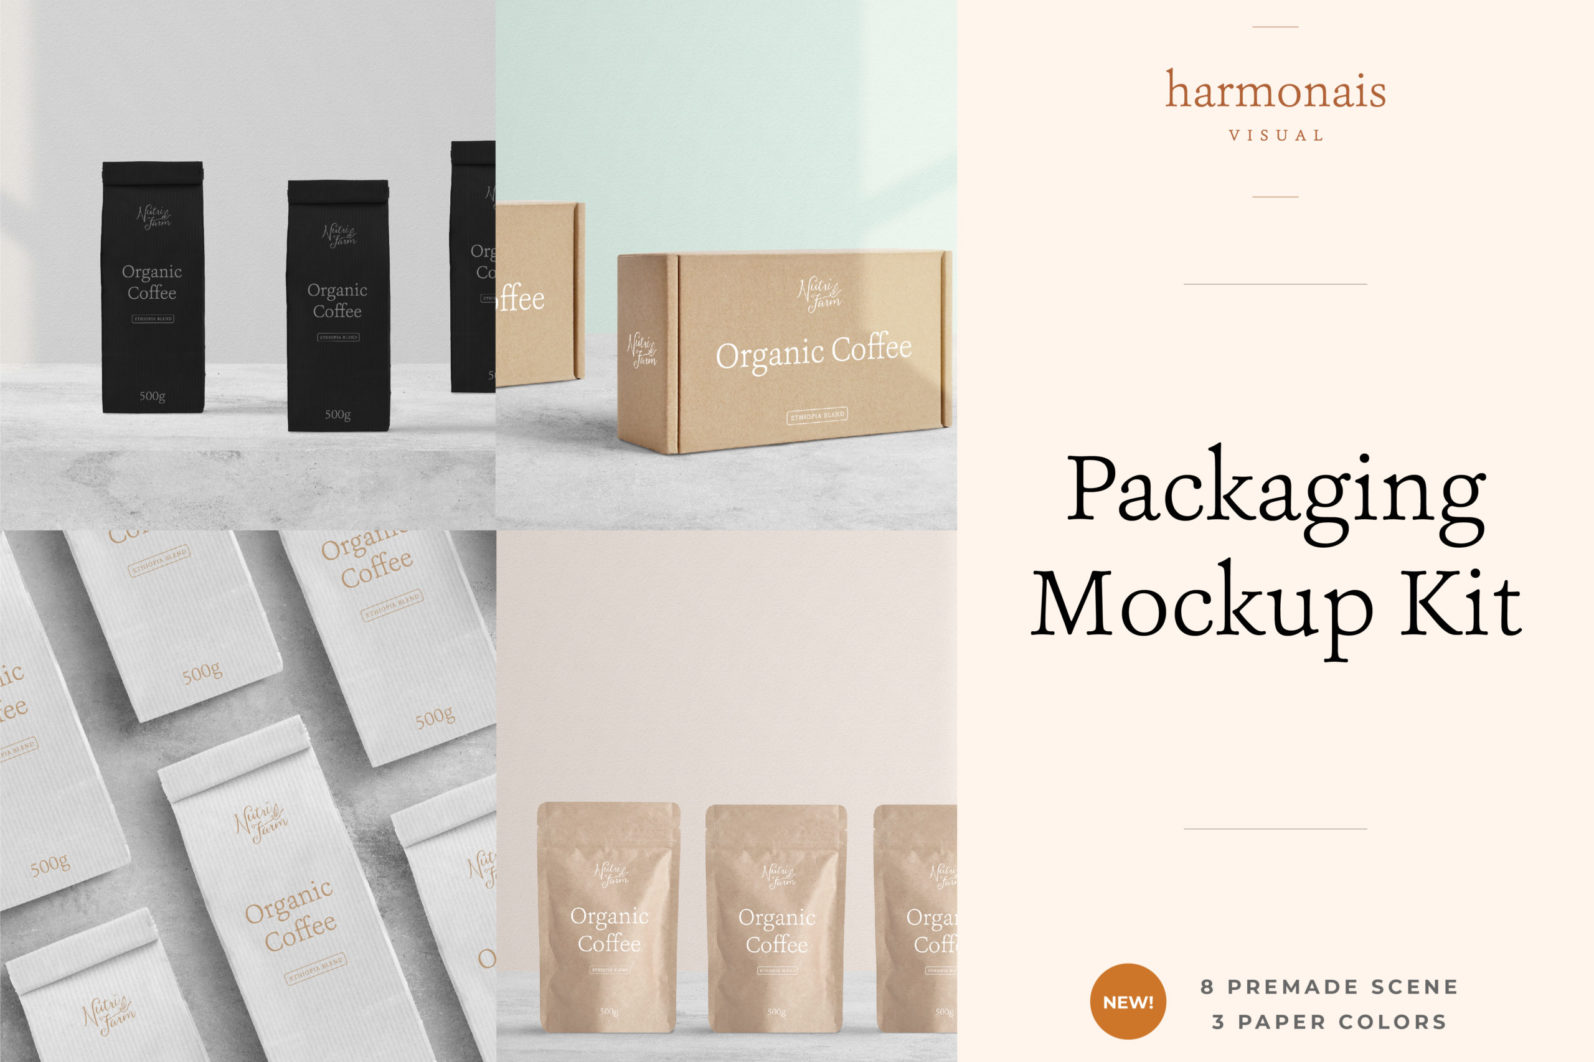 Package Mockup All Scenes - Min No.1 - Untitled 2 102 scaled -